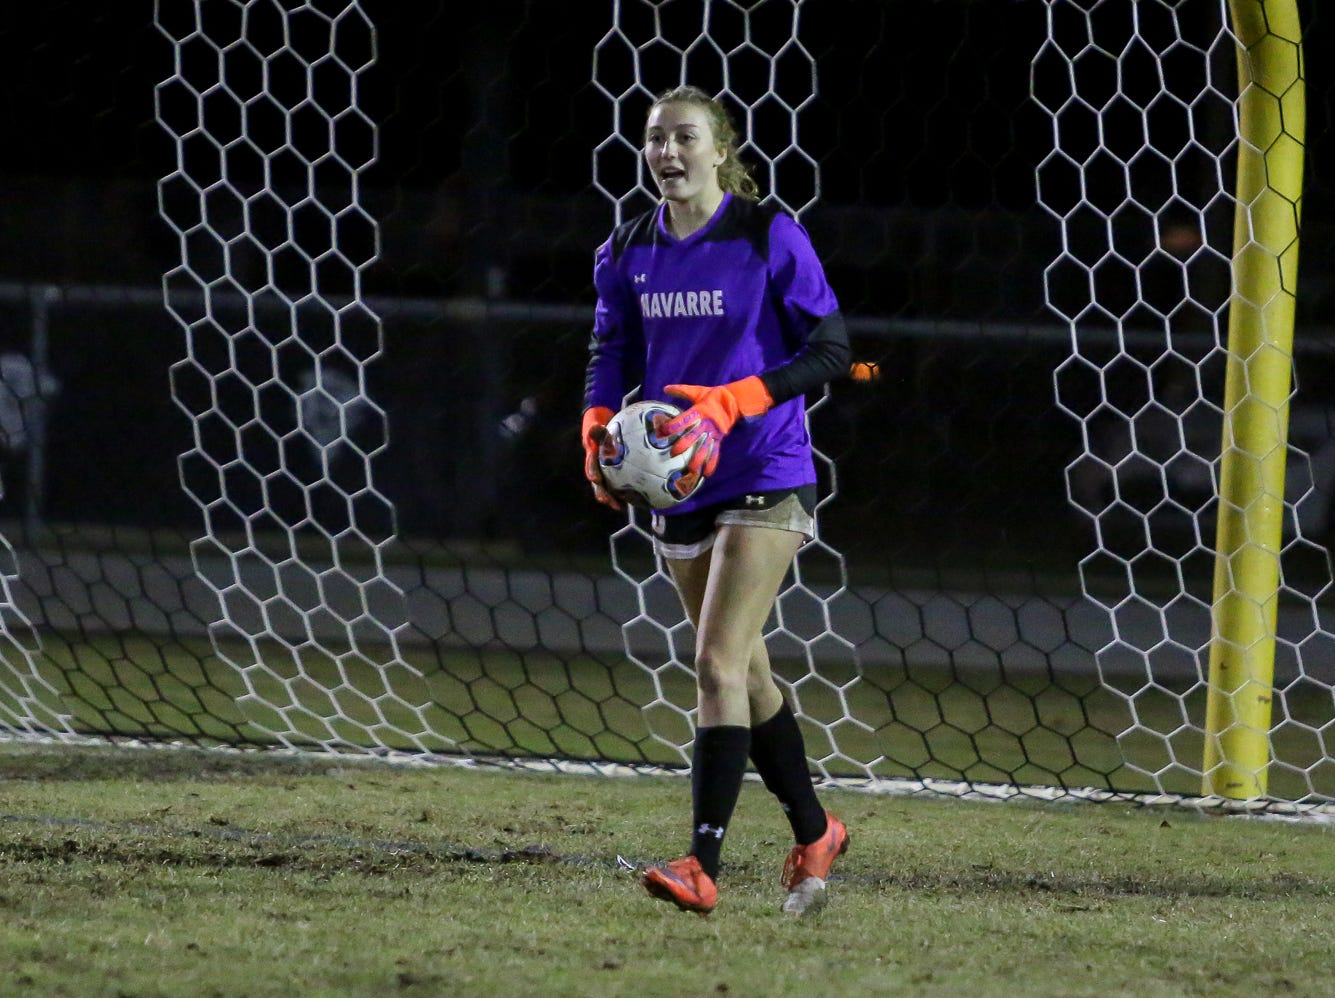 Navarre goaltender Jessika Seward (8) prepares to throw the ball back into play against Niceville in a District 1-4A showdown of unbeaten teams at Navarre High School on Tuesday, December 4, 2018. The game ended in a 1-1 tie.